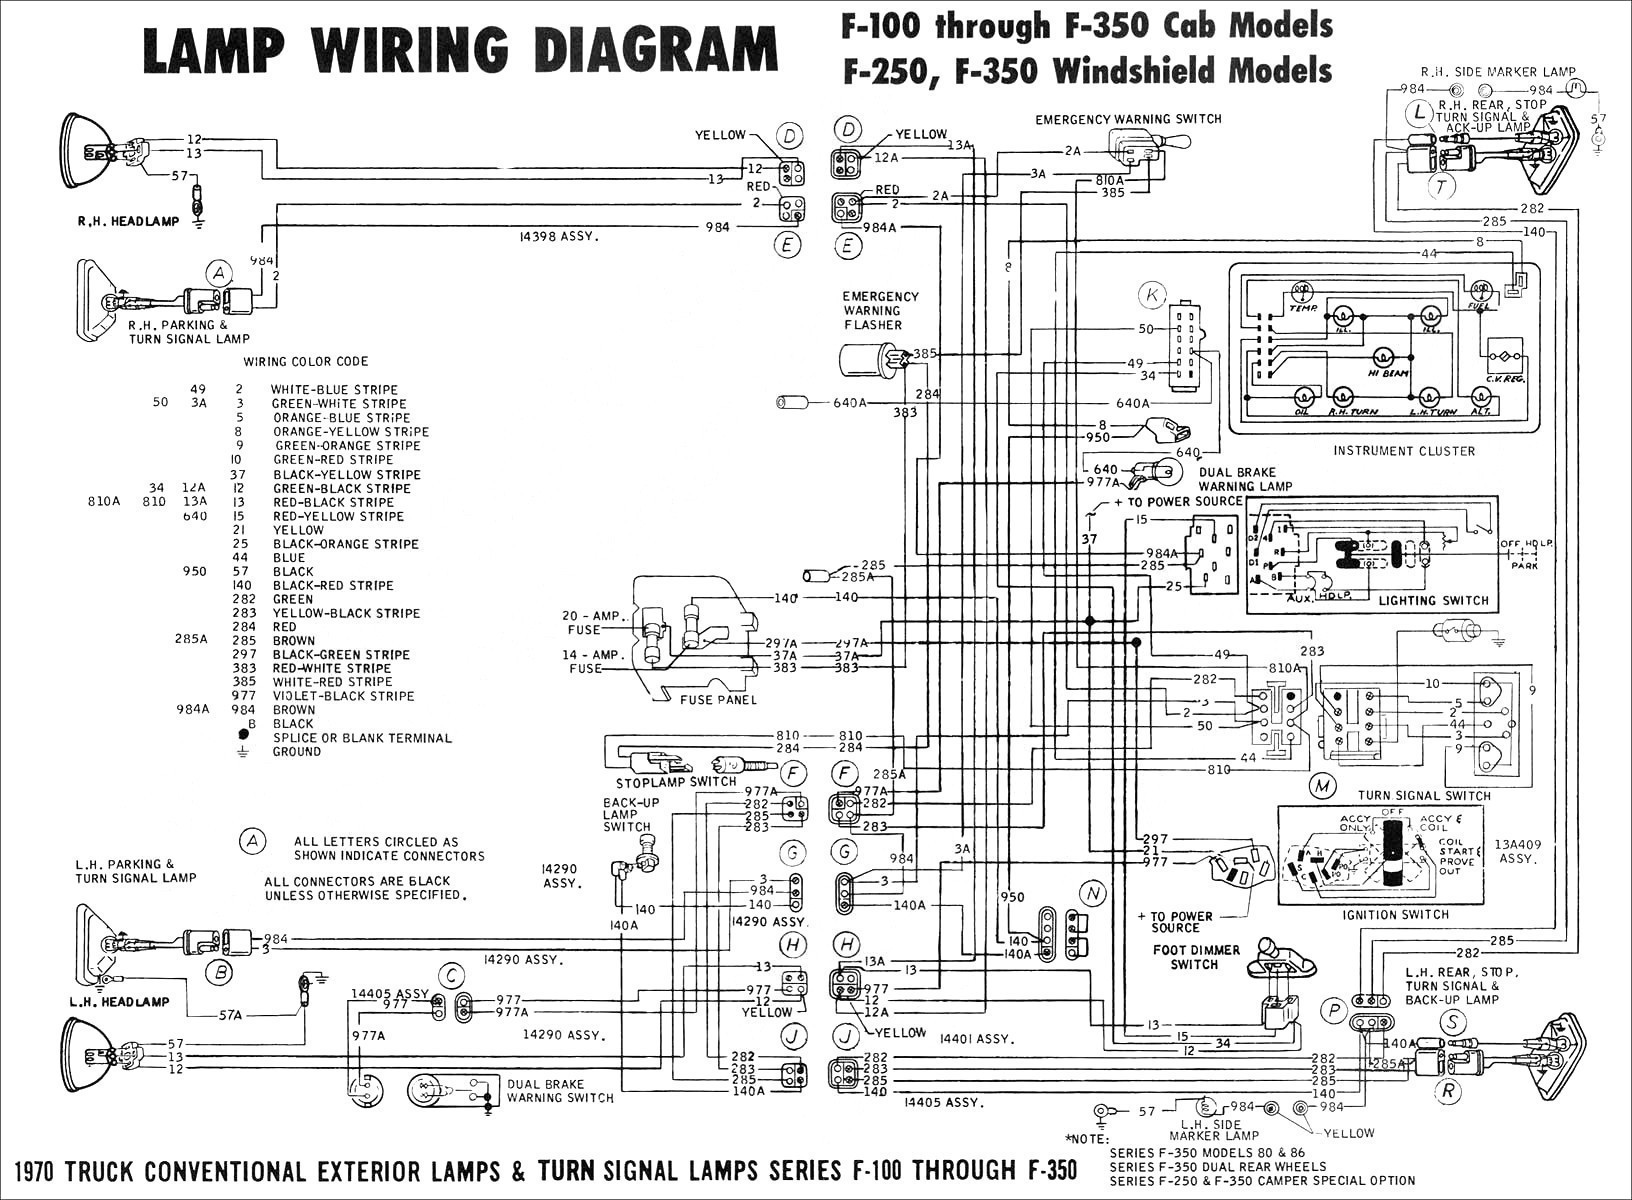 Audi A4 1 8 T Engine Diagram Audi A4 Engine Diagram Experts Wiring Diagram •